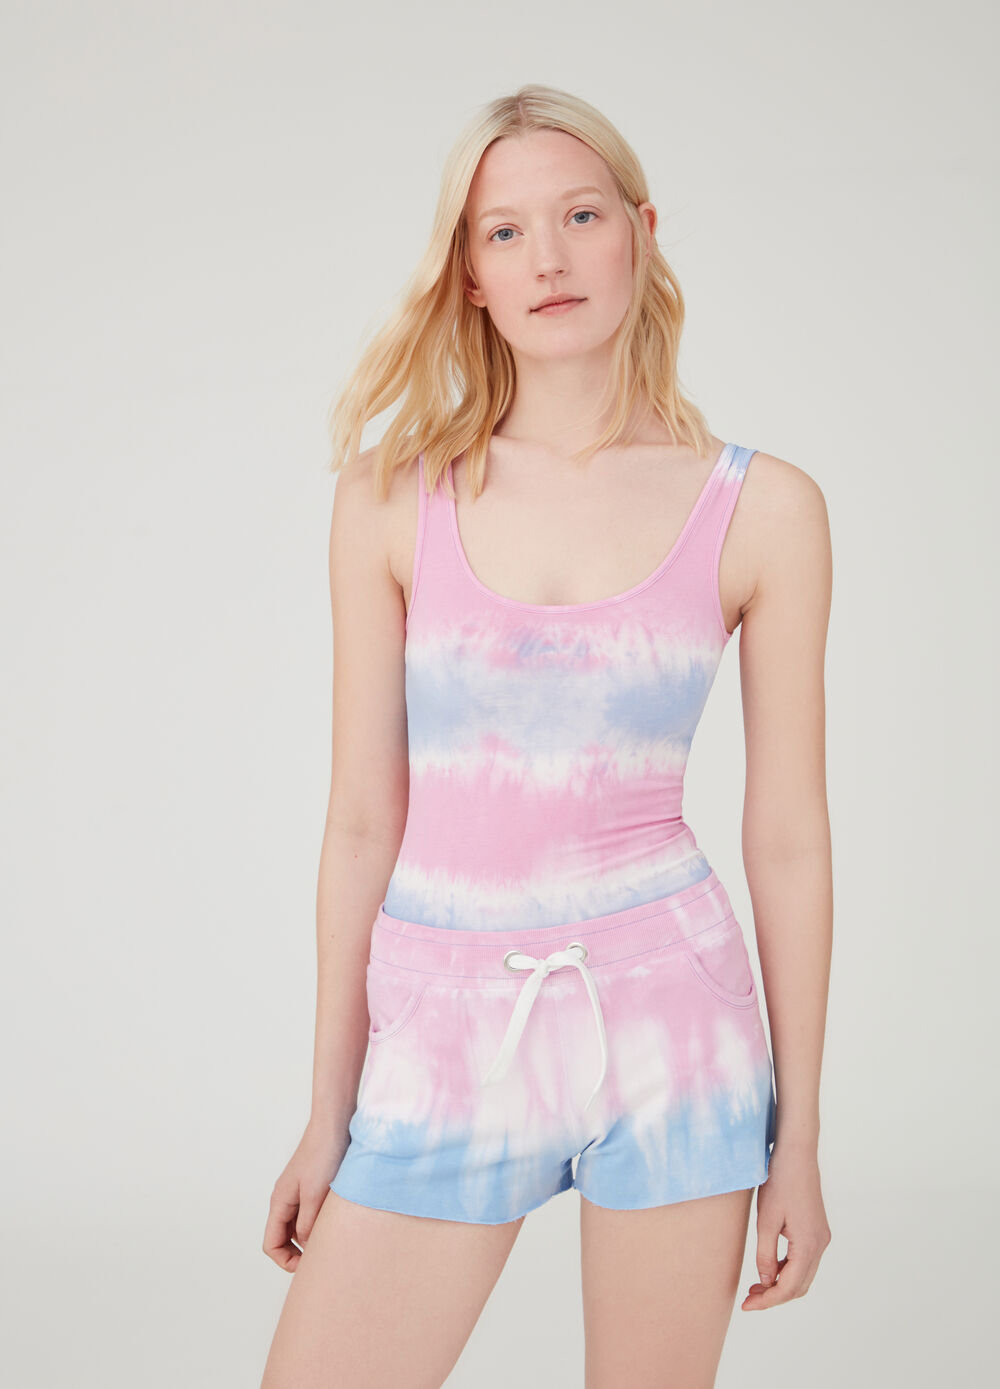 Multicoloured tank top by Maui and Sons